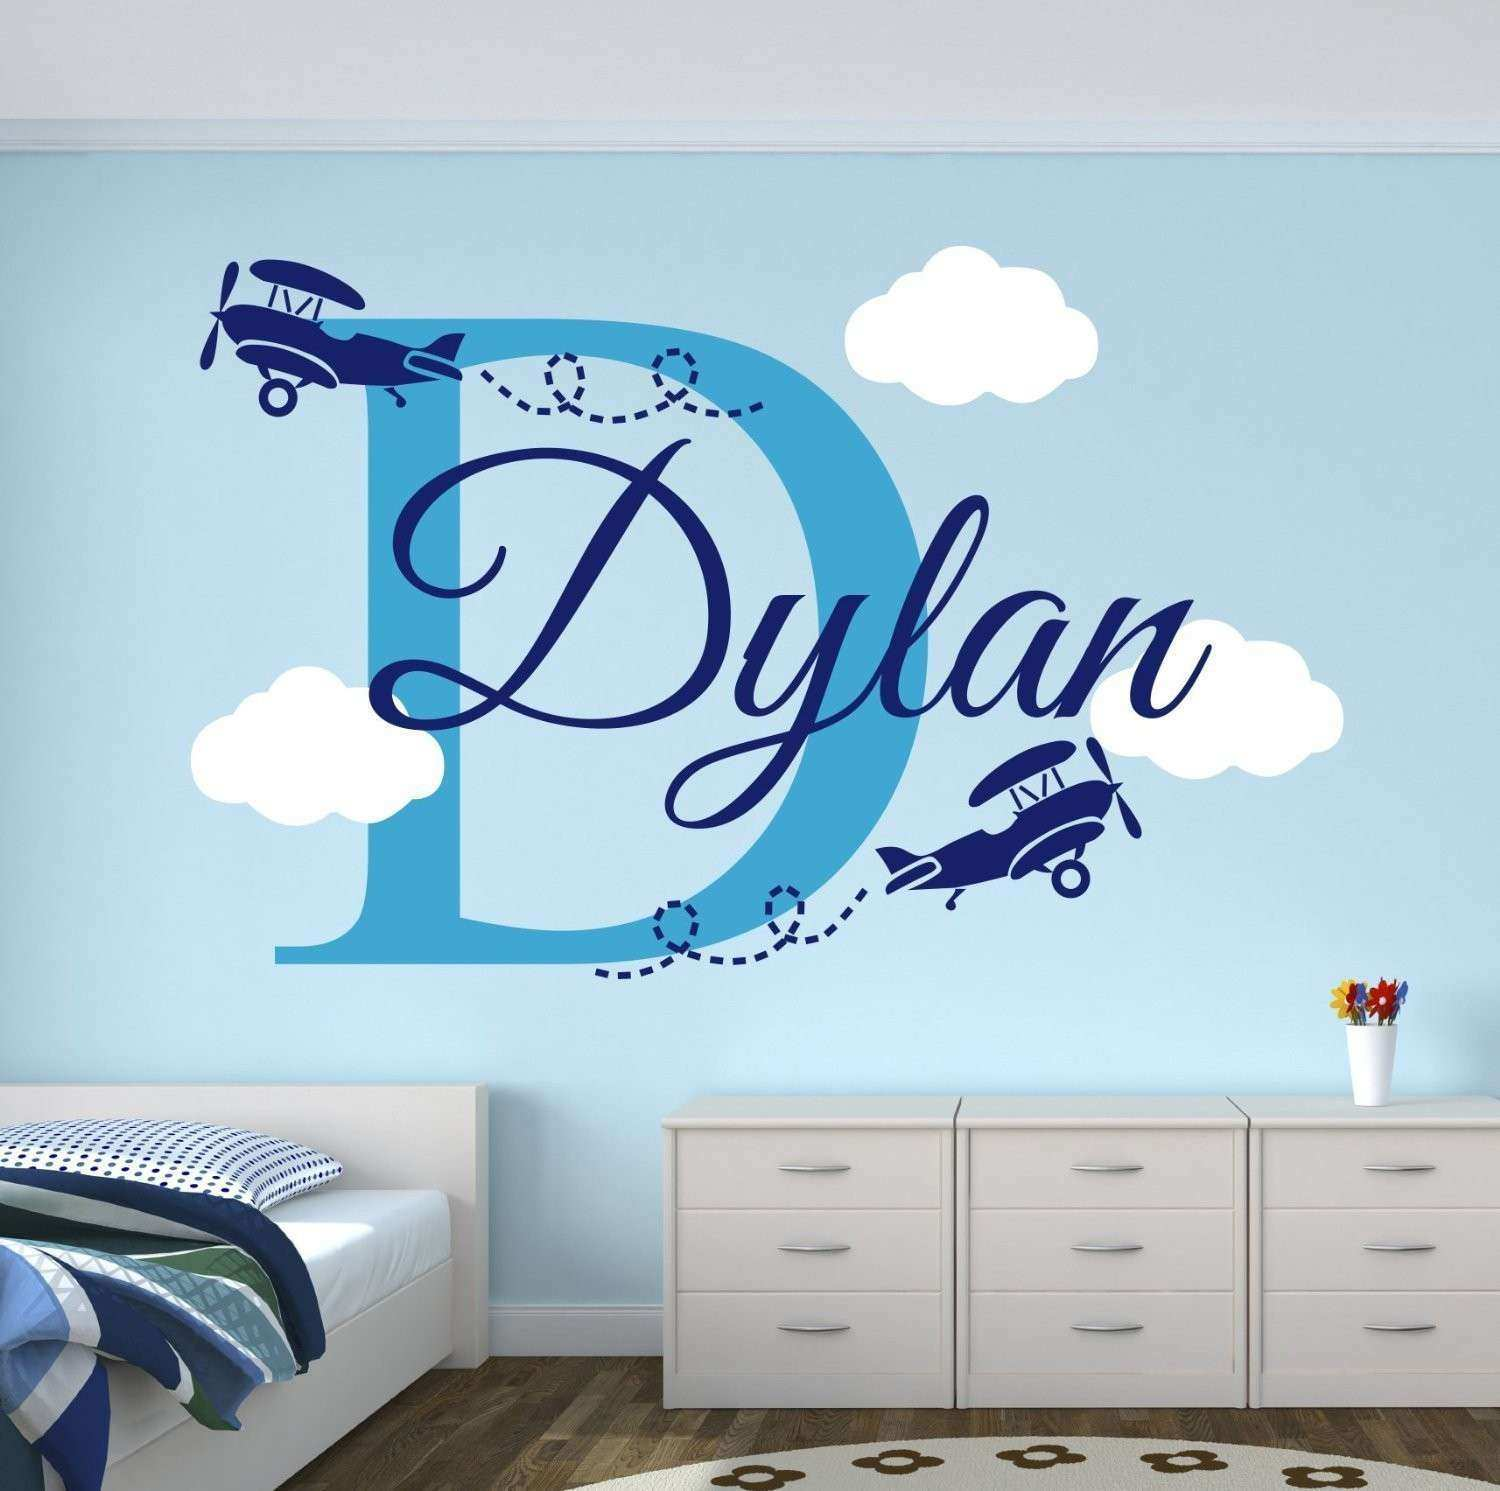 Custom Boys Name Airplane Clouds Decal Nursery Decor Kids Room Decor